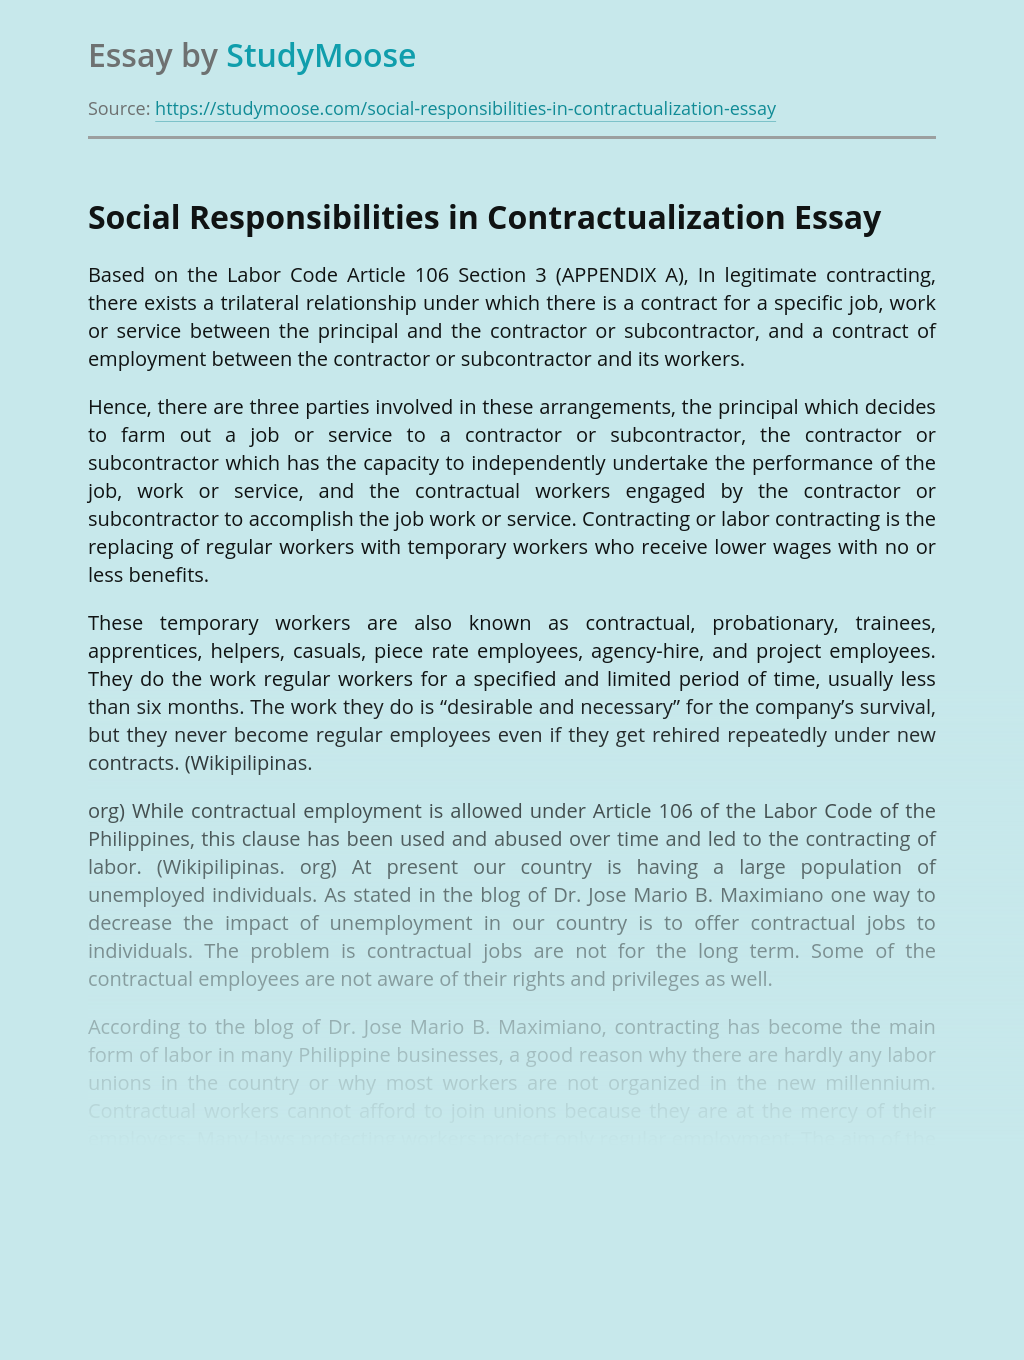 Social Responsibilities in Contractualization Way of Employment